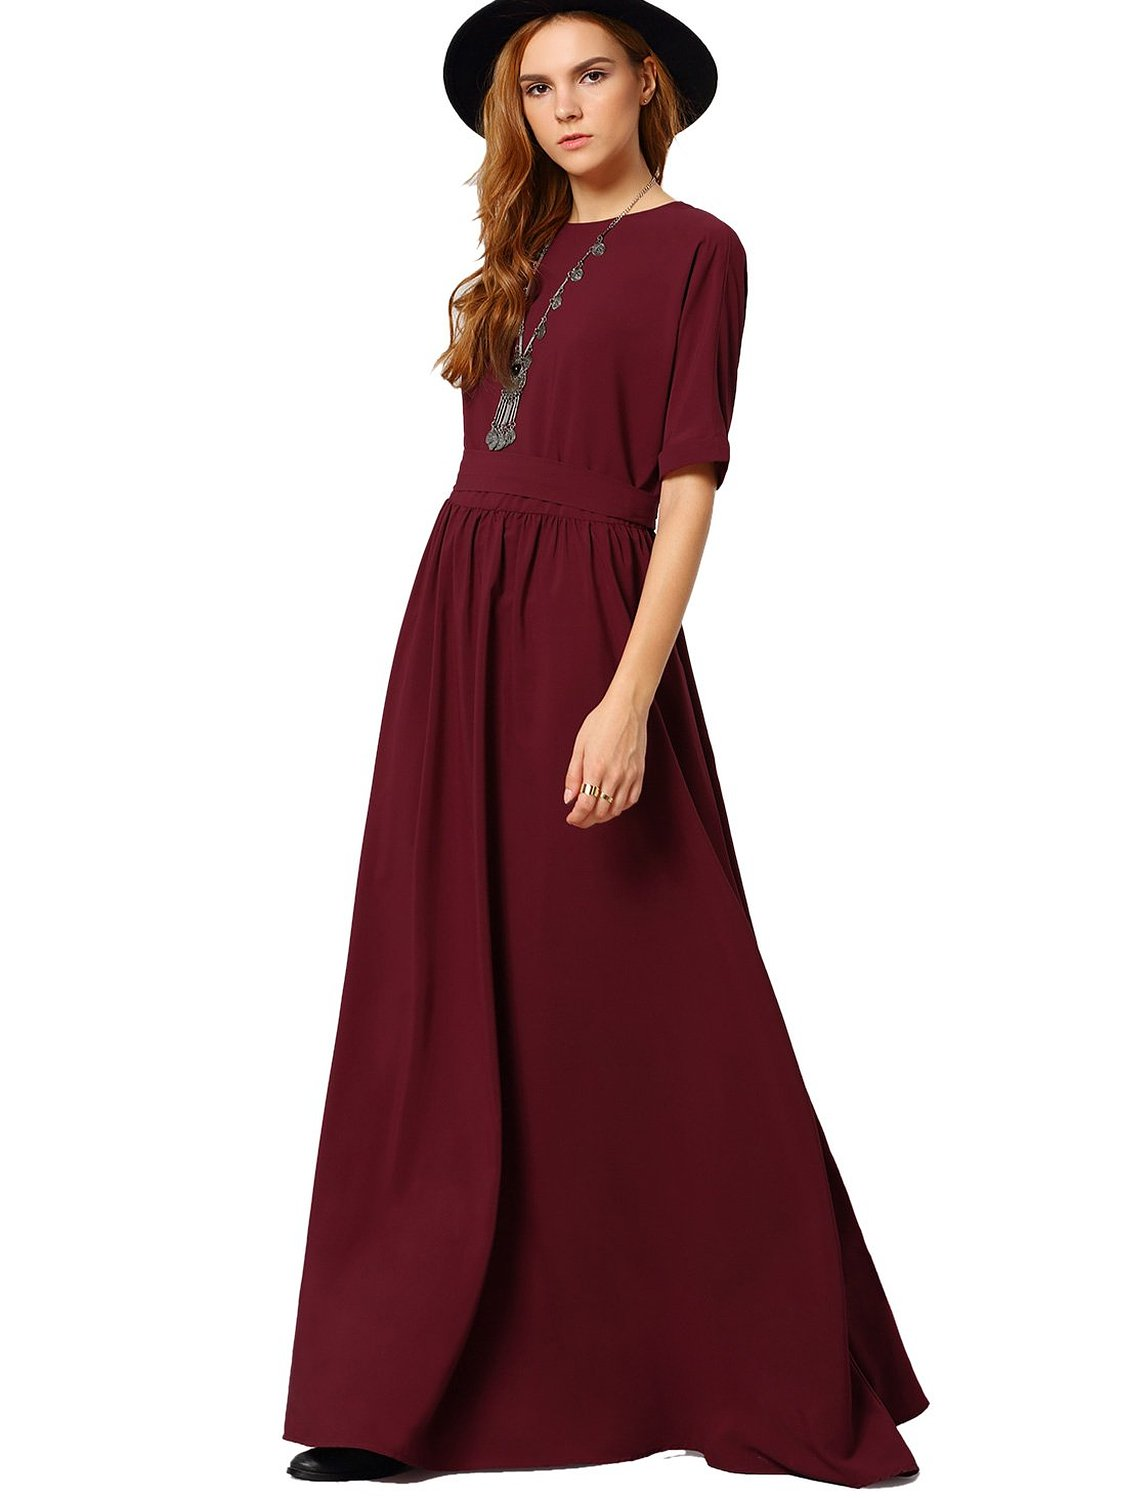 Casual dresses with sleeves and midway length dress